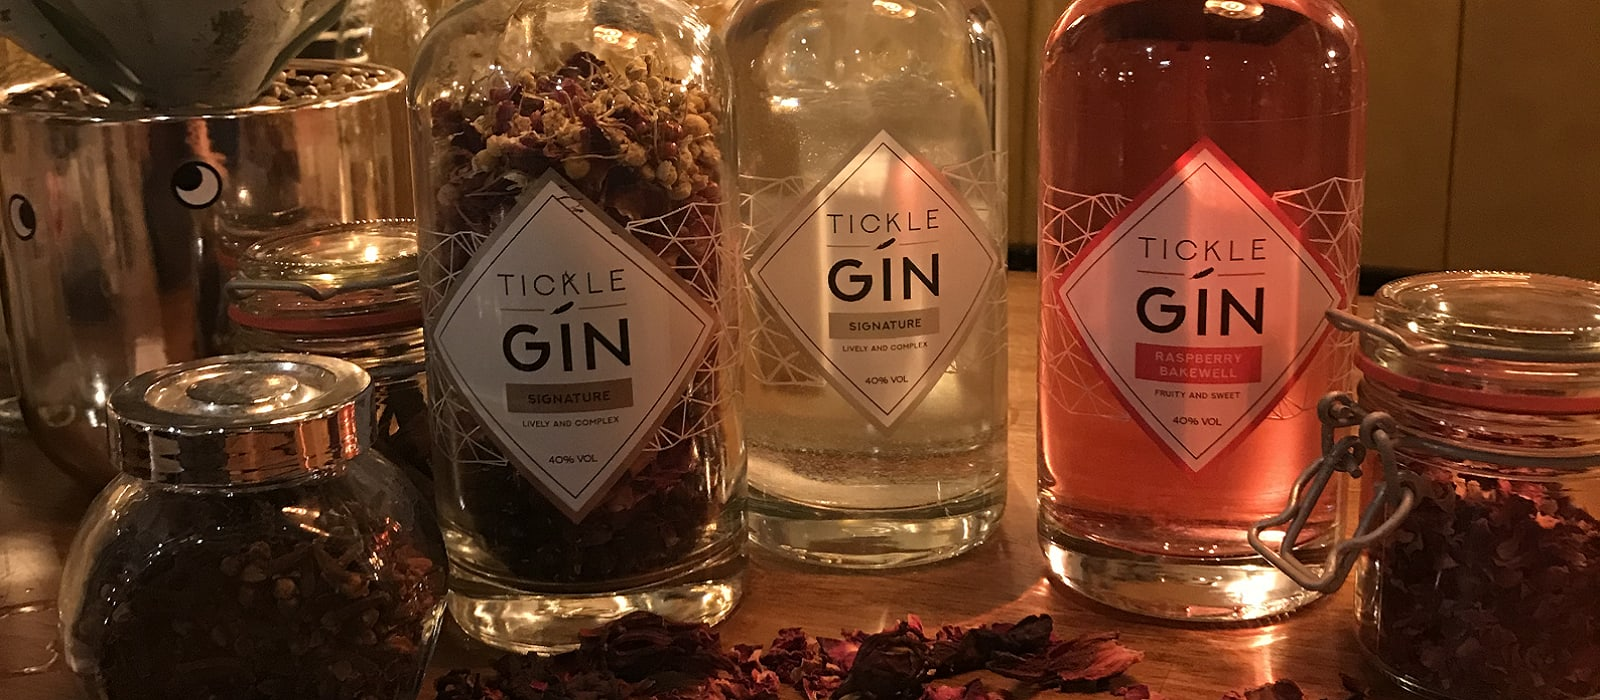 Tickle gin bottles at Swings & Smiles Gin Night